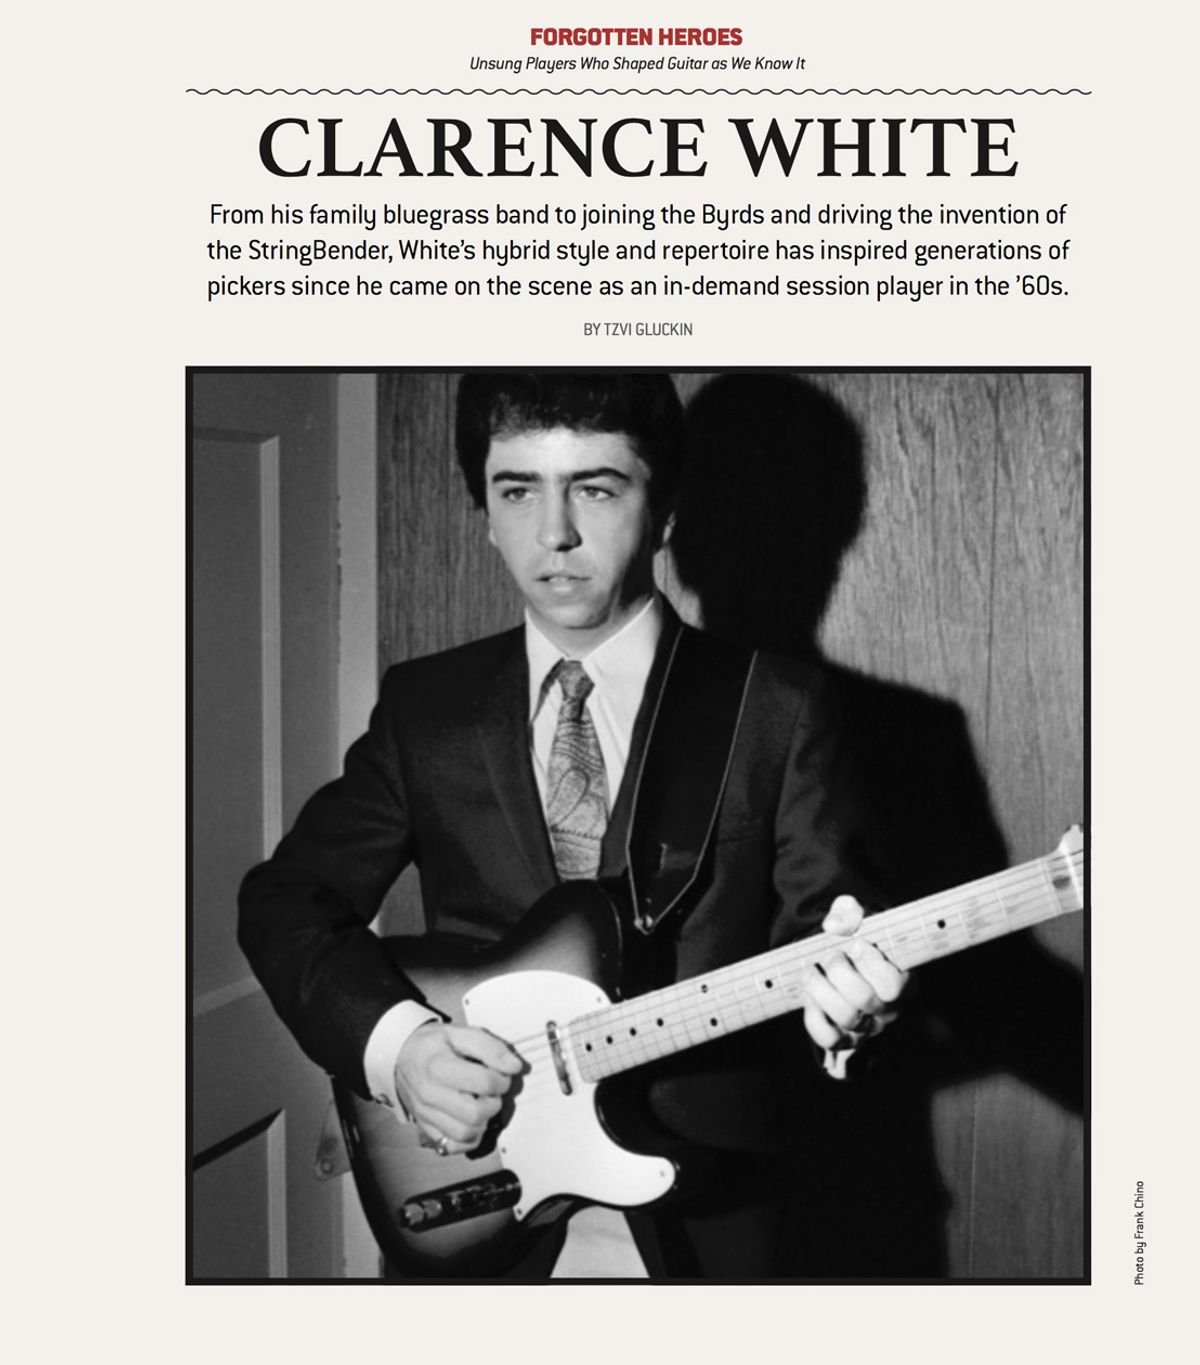 Forgotten Heroes: Clarence White